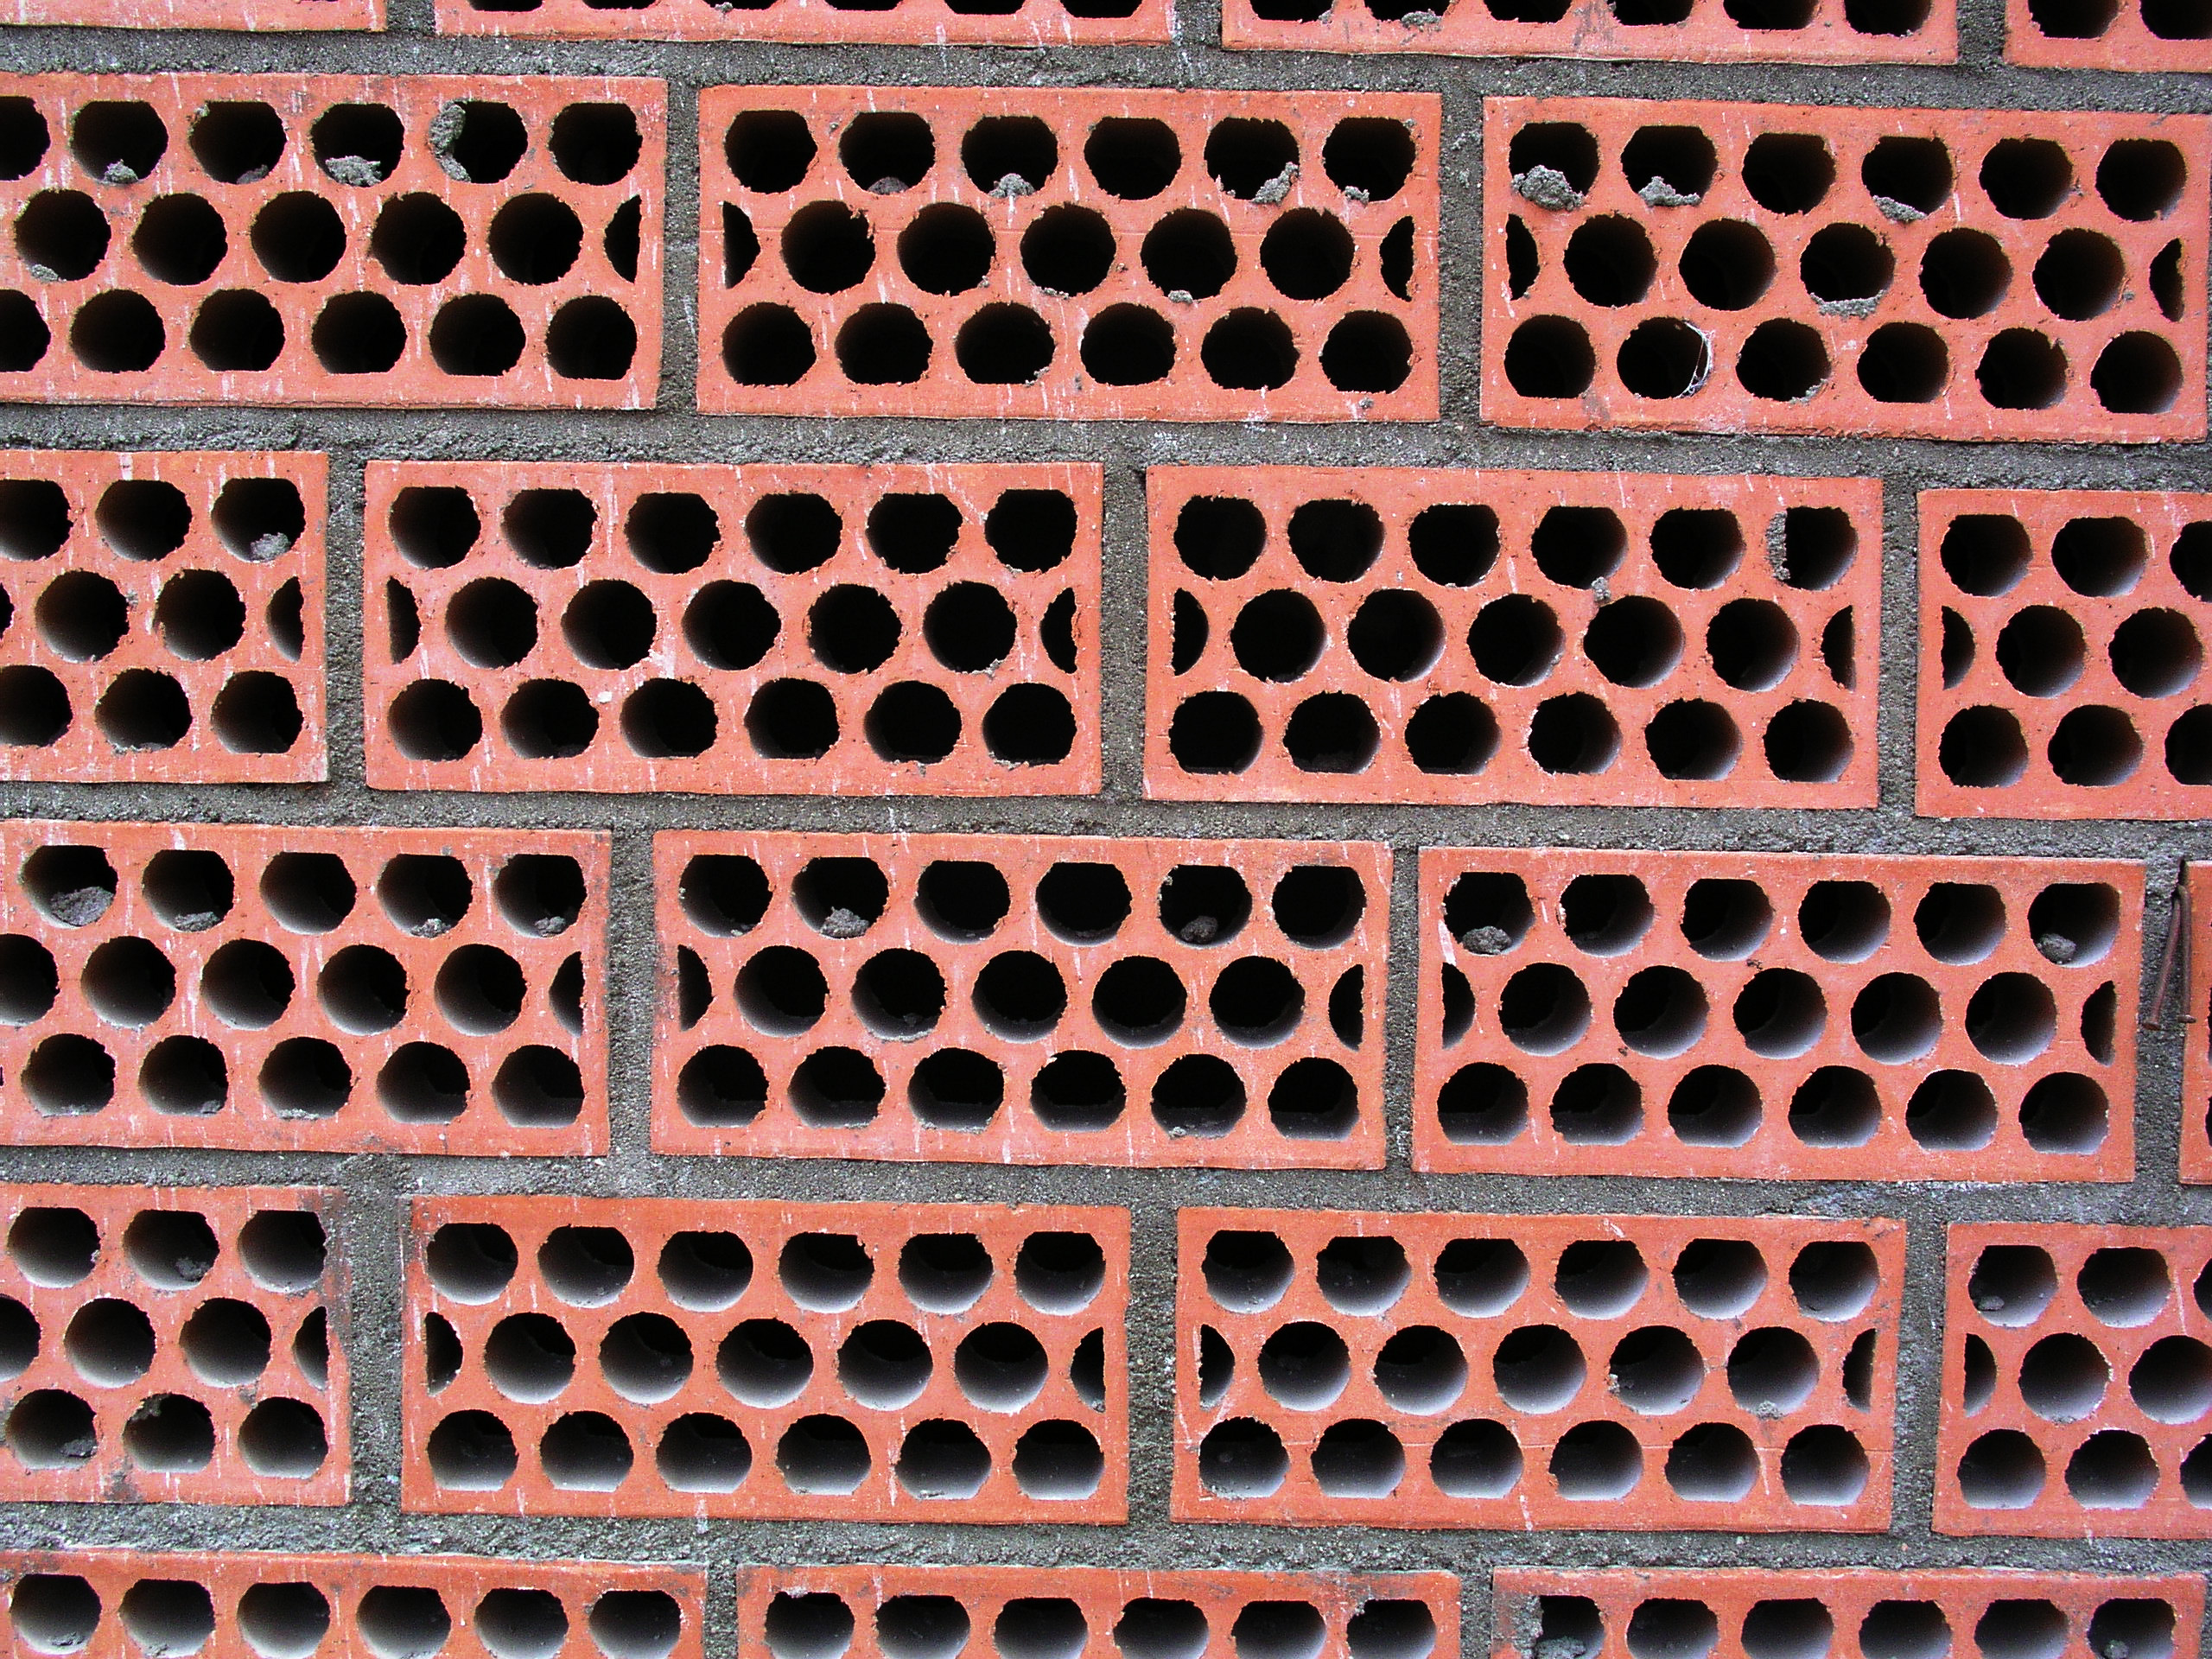 Wall Hole Design : Vertical hole brick wordreference forums